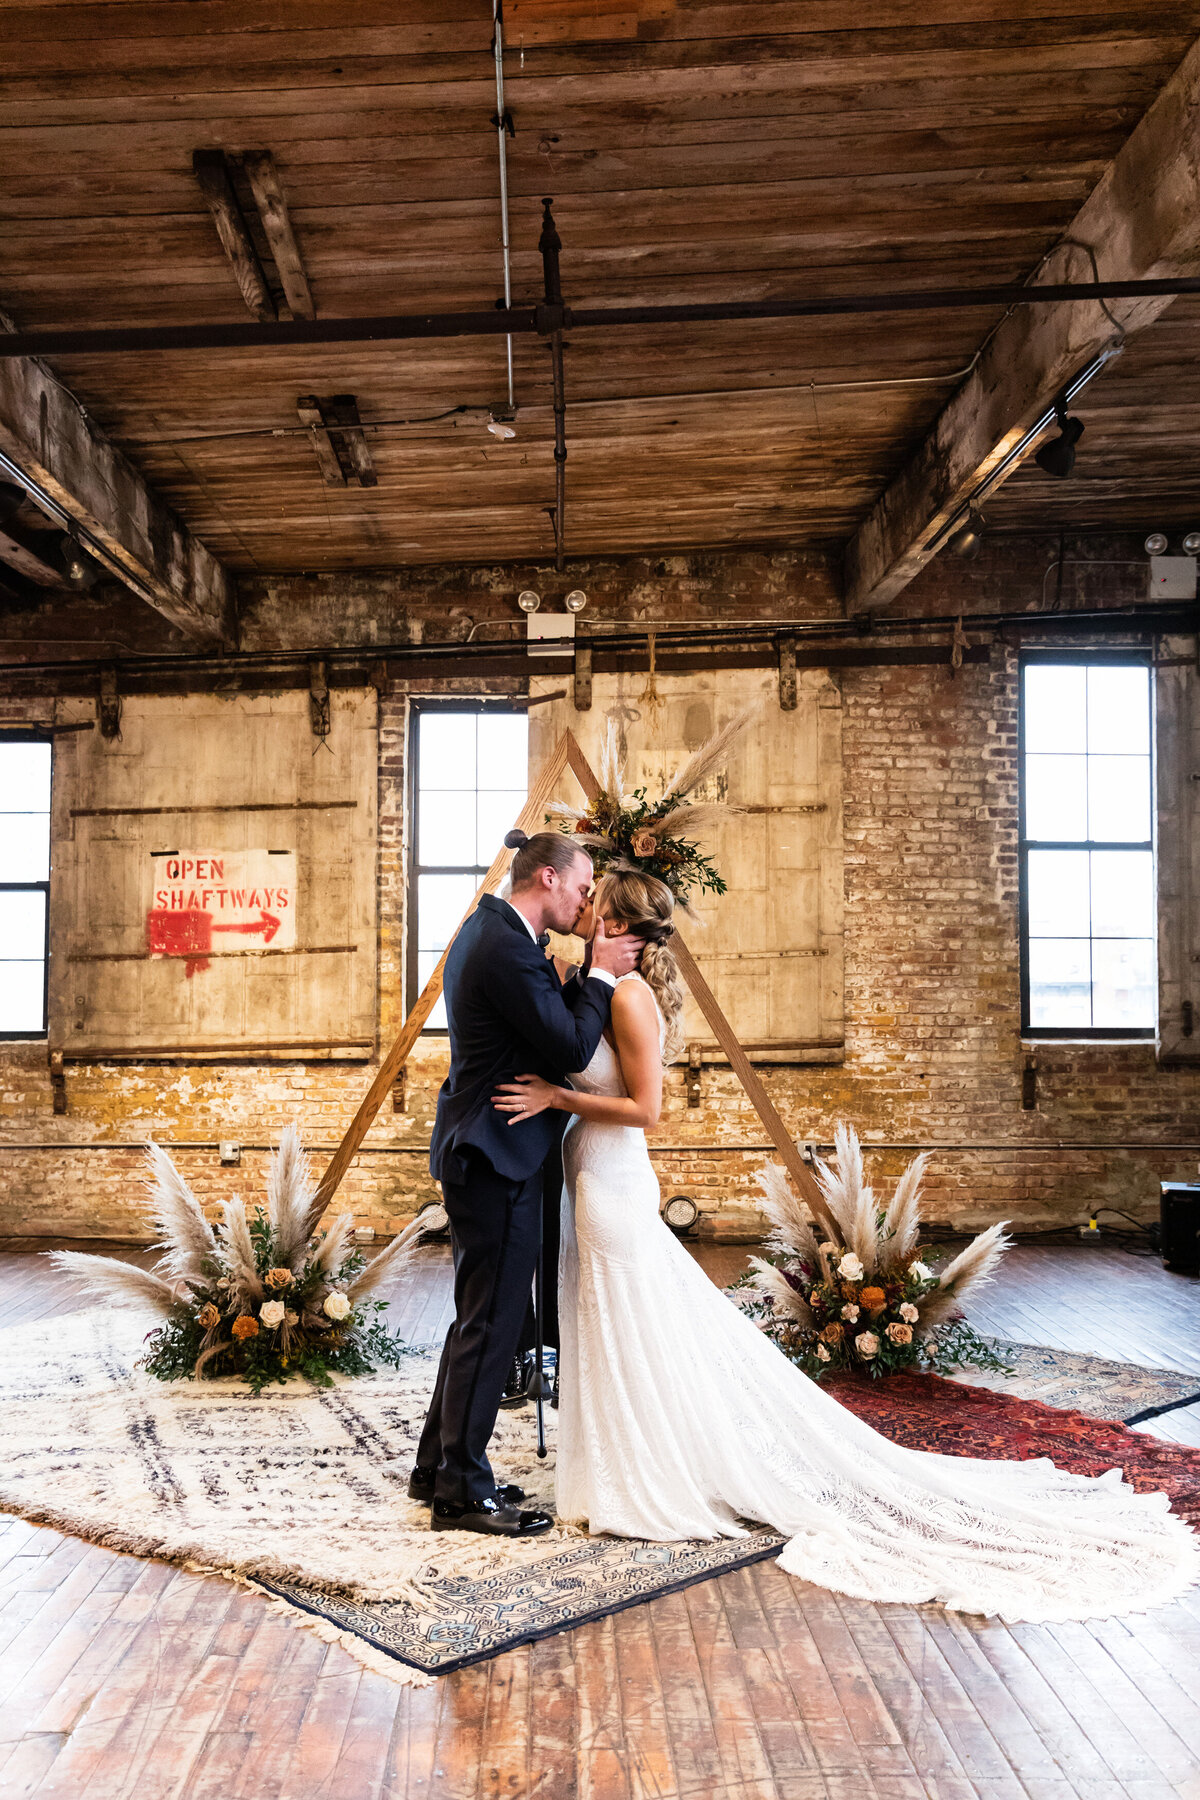 Greenpoint_Loft_0901_Kacie_Corey_Wedding_06921